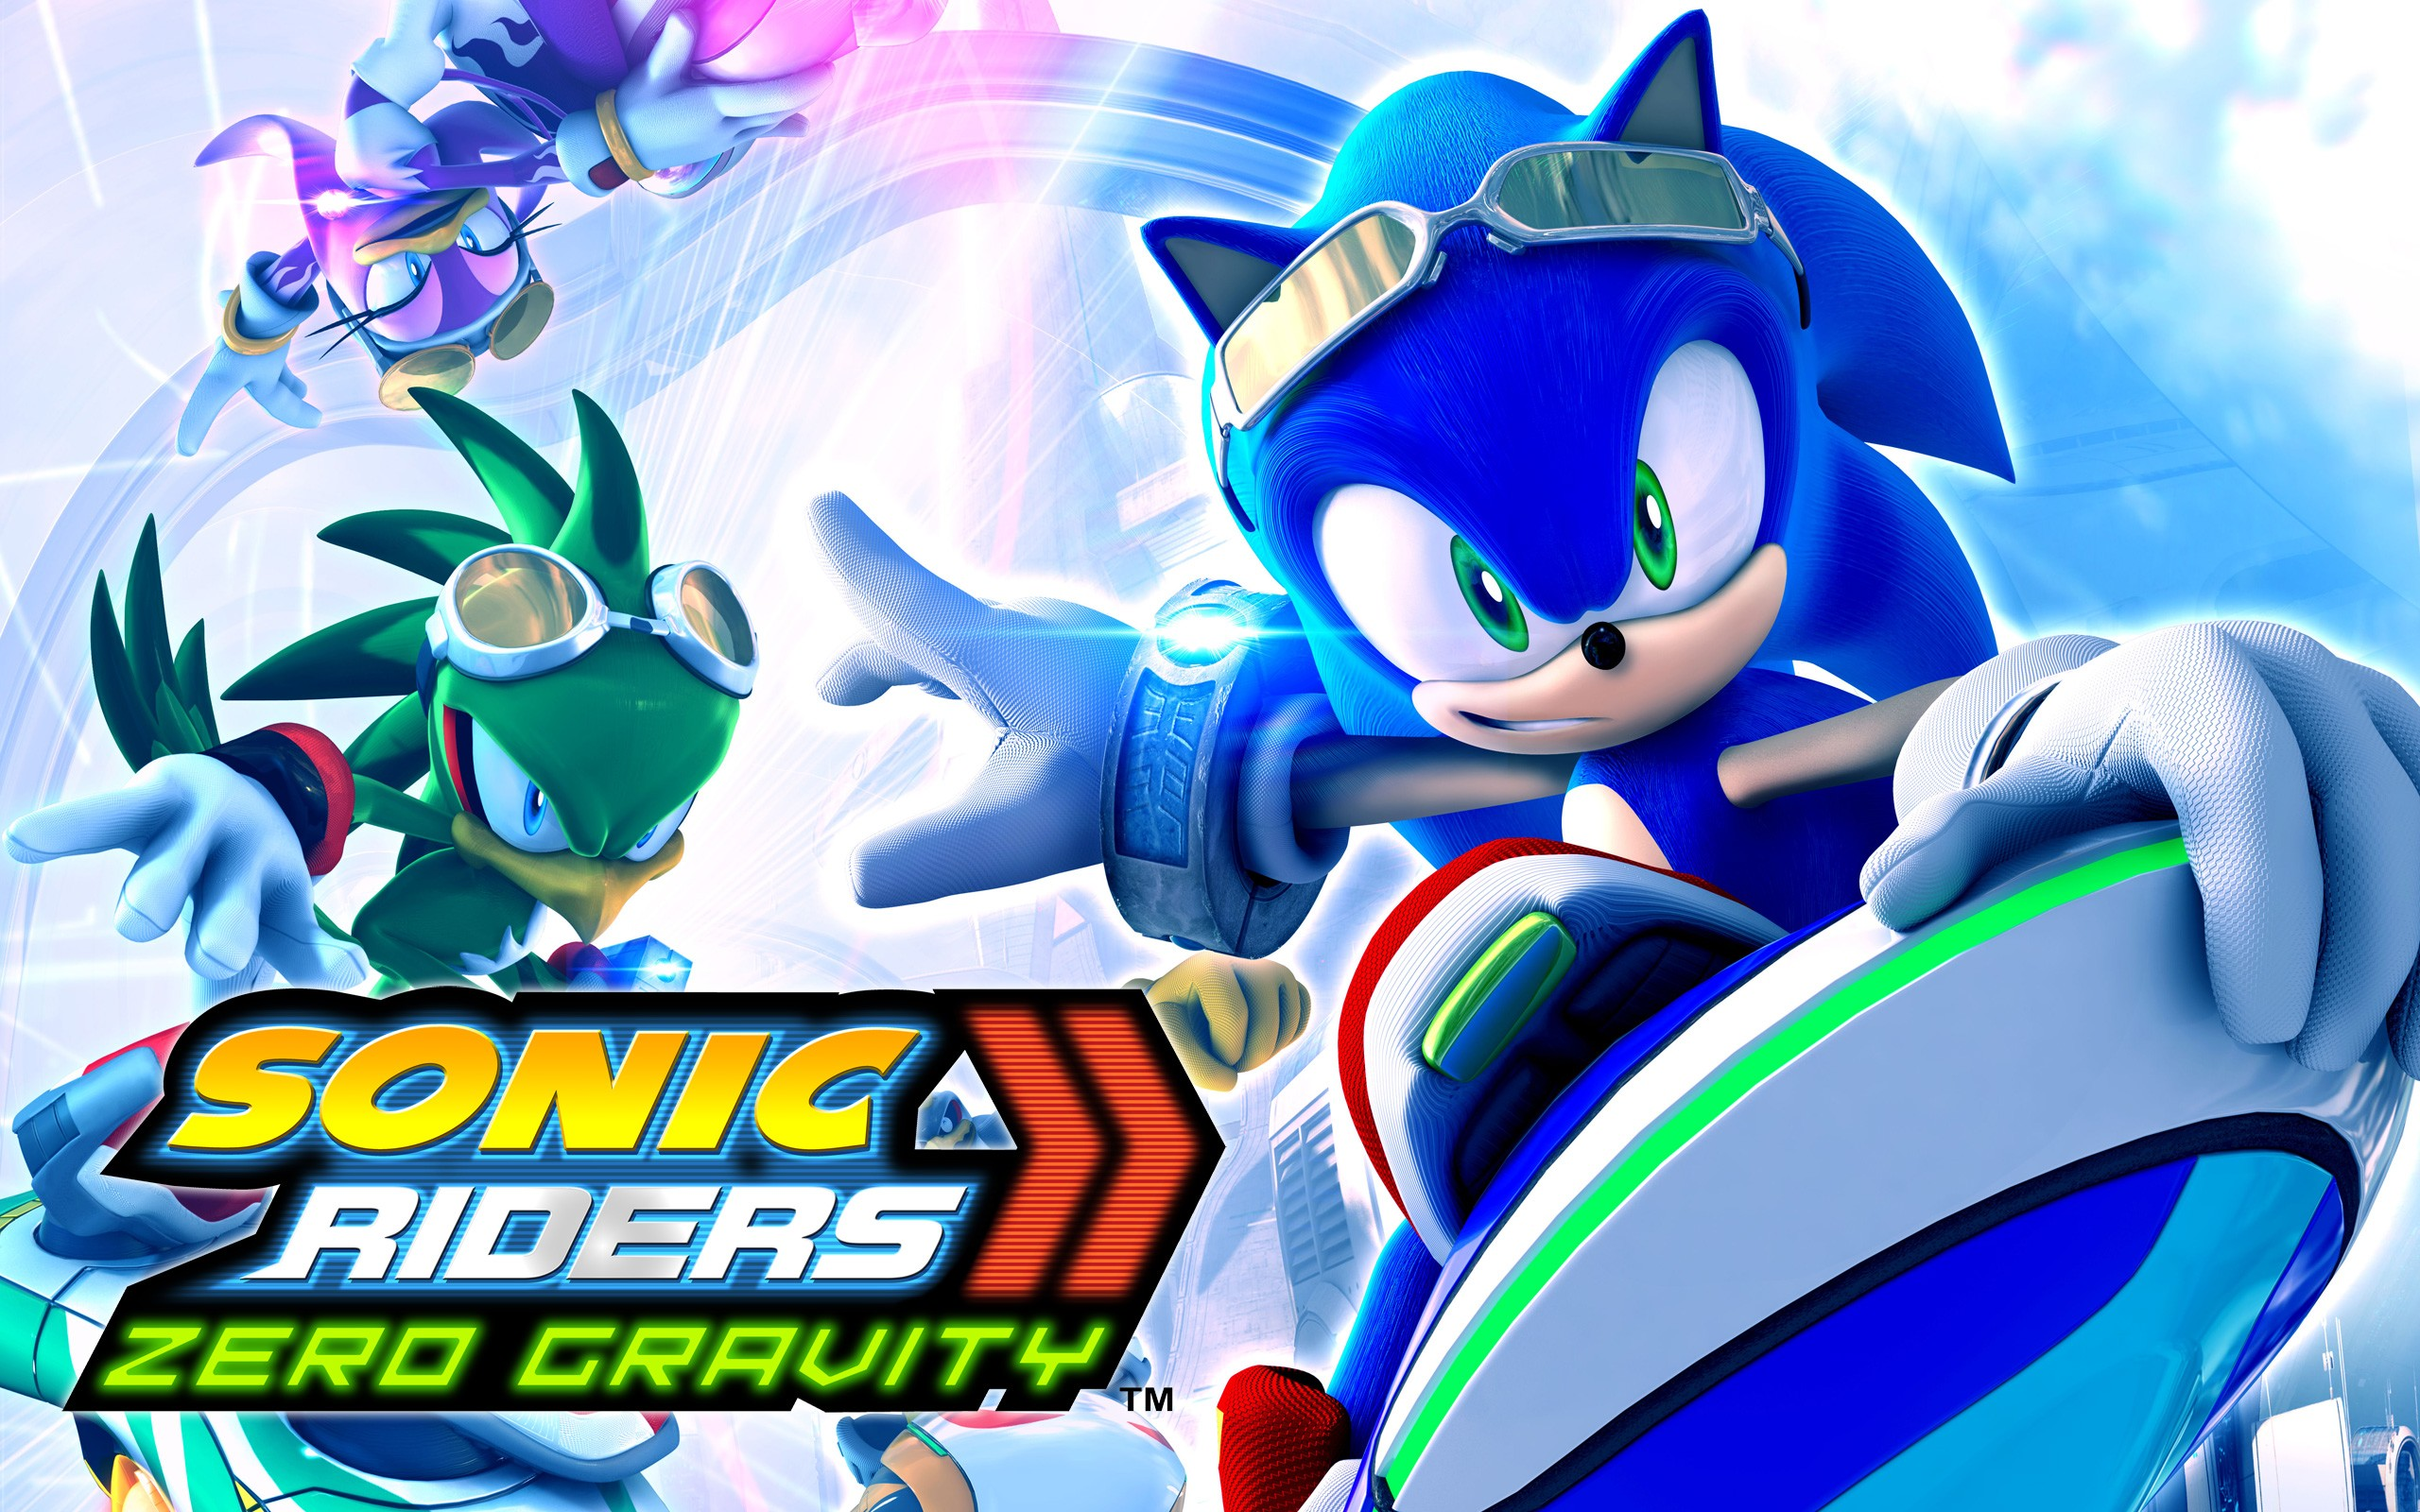 12 Sonic Riders Zero Gravity Hd Wallpapers Background Images Wallpaper Abyss